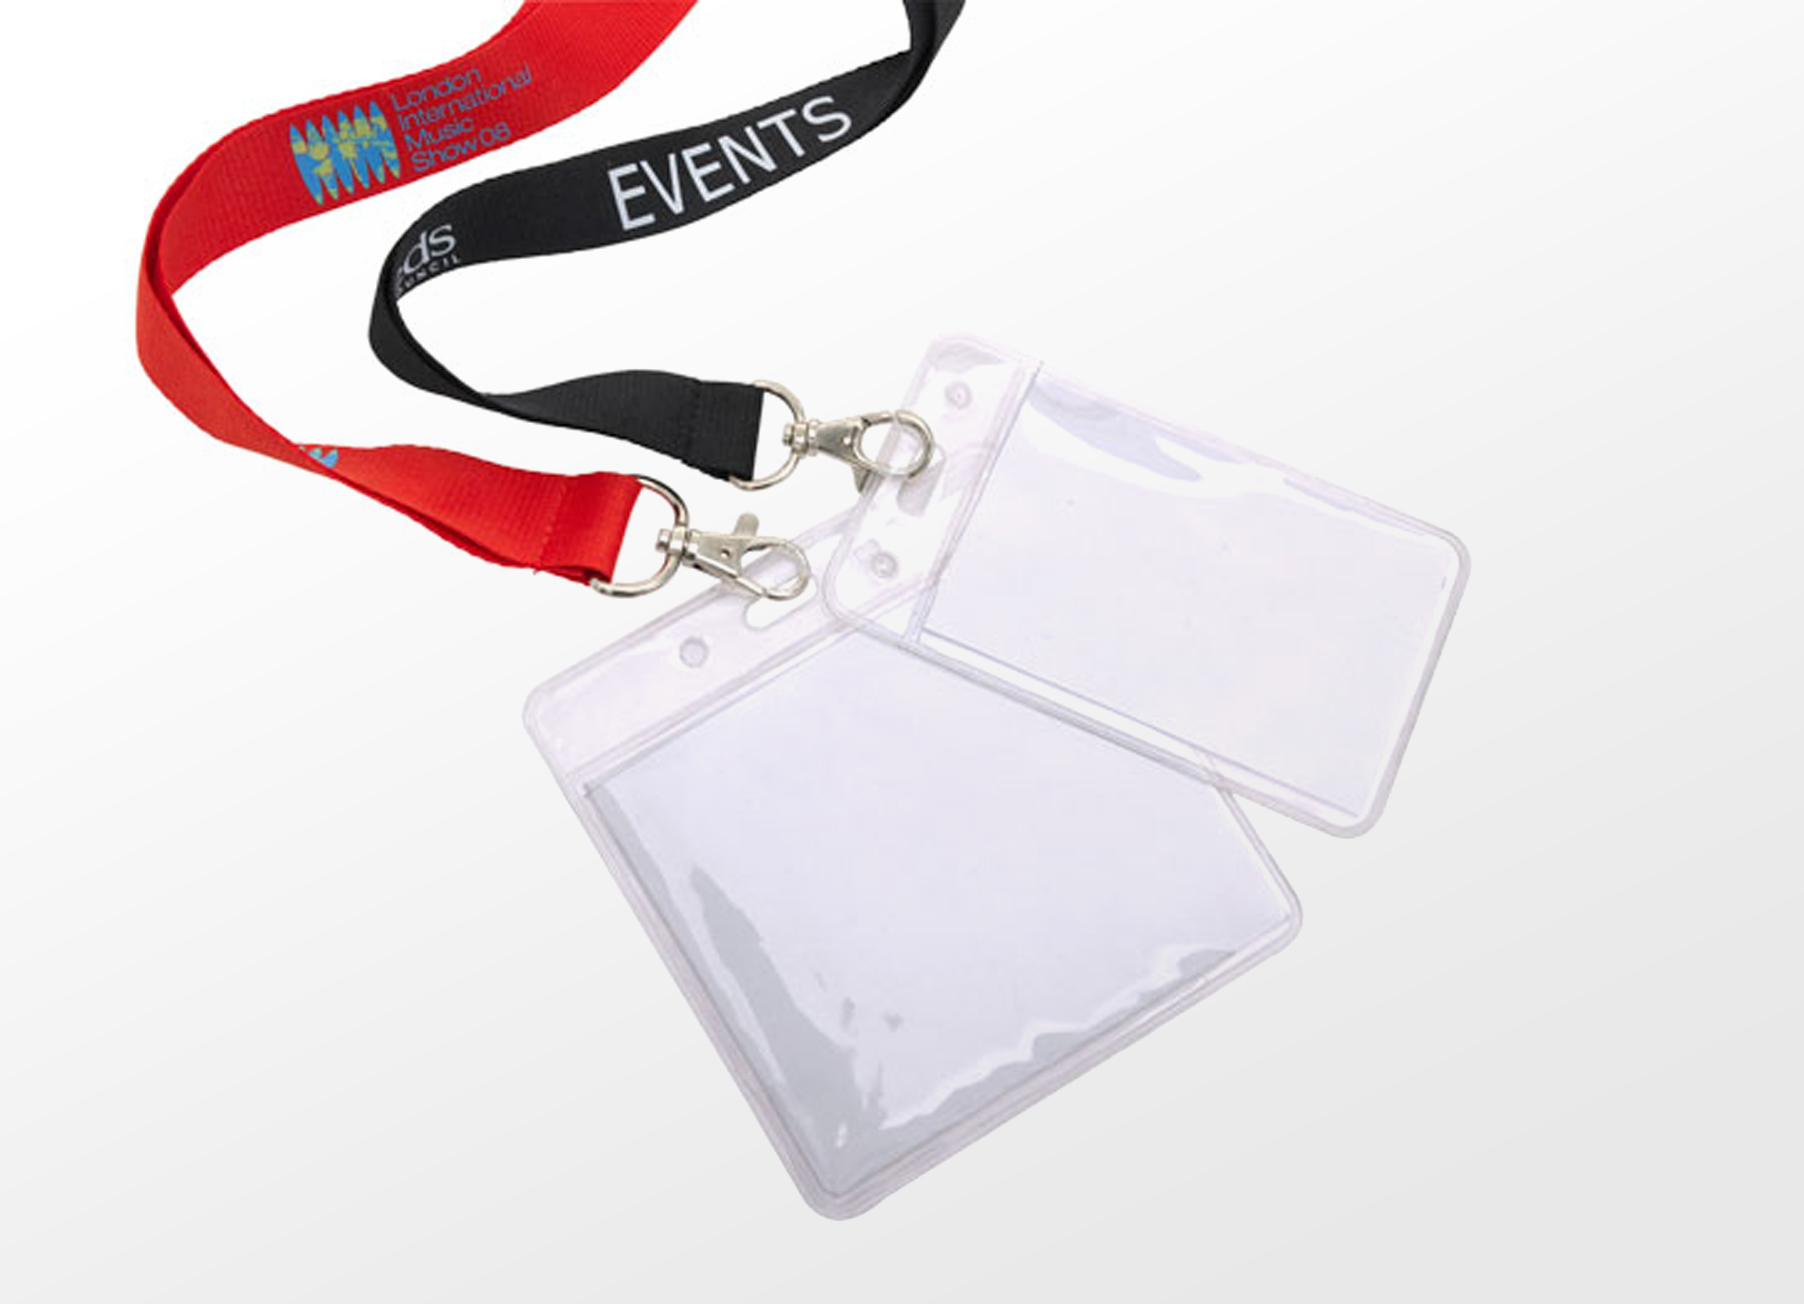 20 Trends That Are So 2008 It Hurts - Cosmopolitan Plastic photo id badges